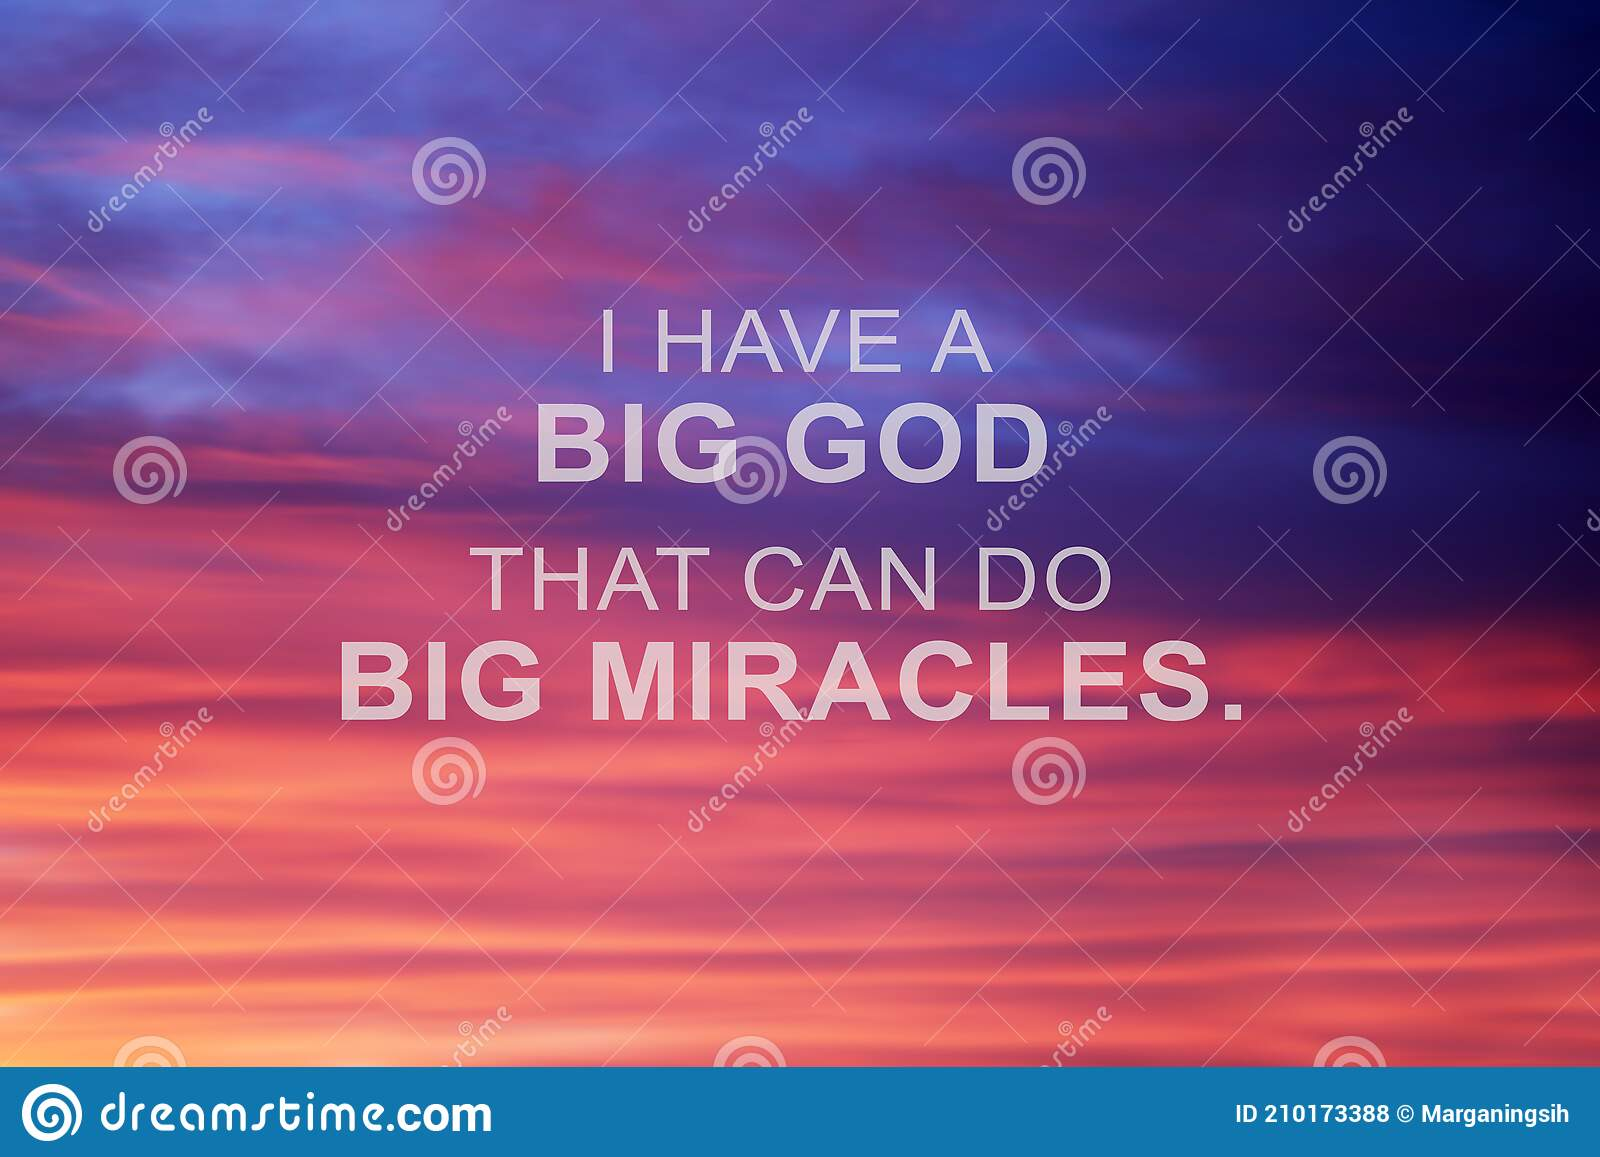 Religious inspirational quotes and sayings